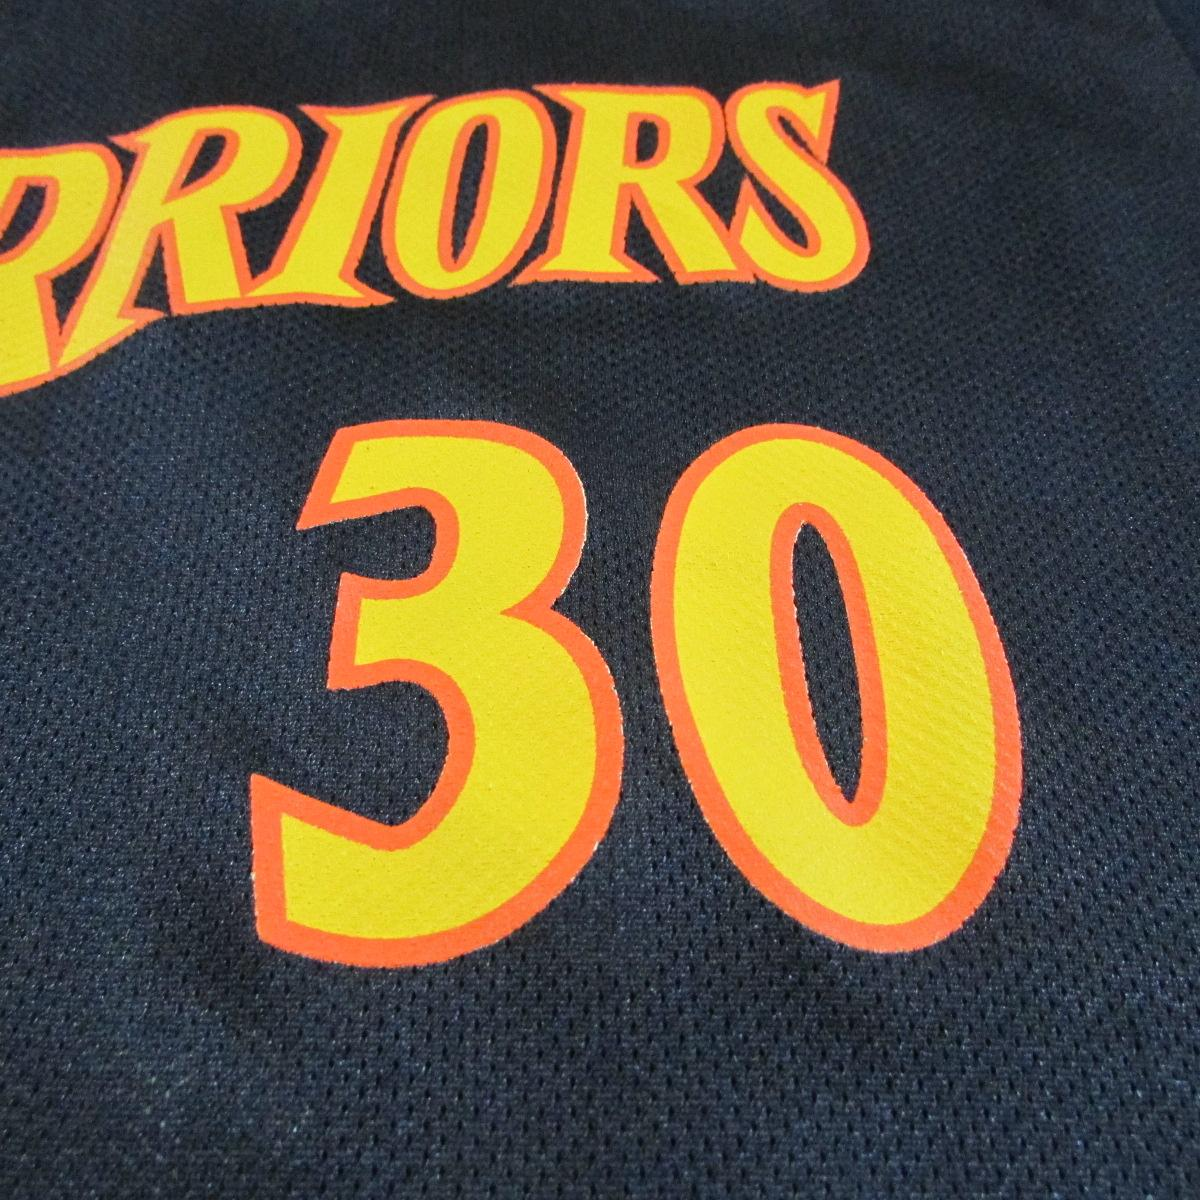 Golden State Warriors Stephen Curry We Believe Basketball Jersey Adidas Sz XL